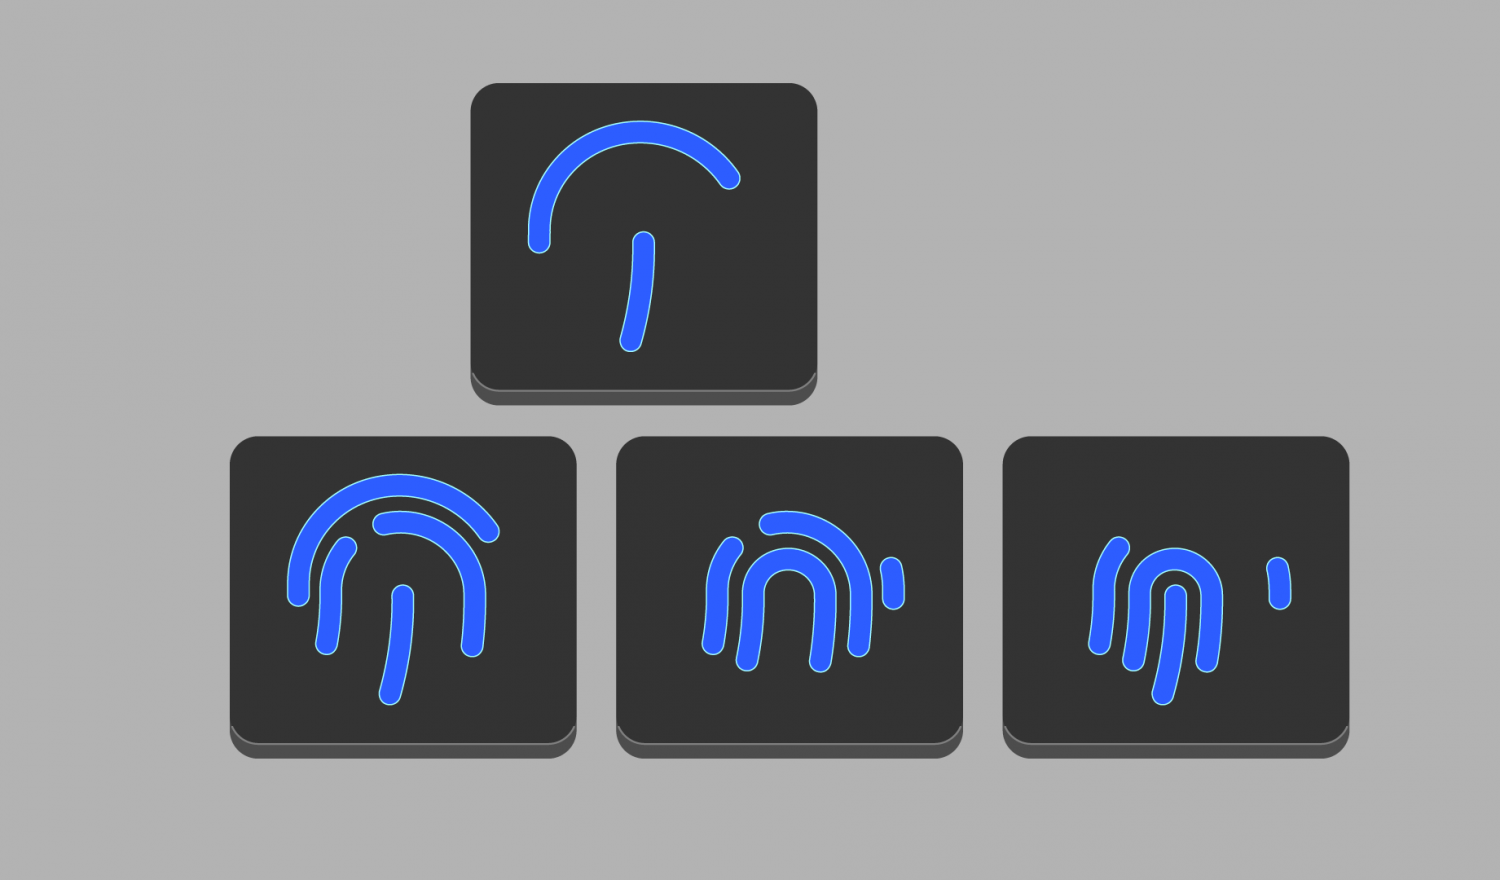 4 keyboard keys each with a fingerprint on it for continuous authentication